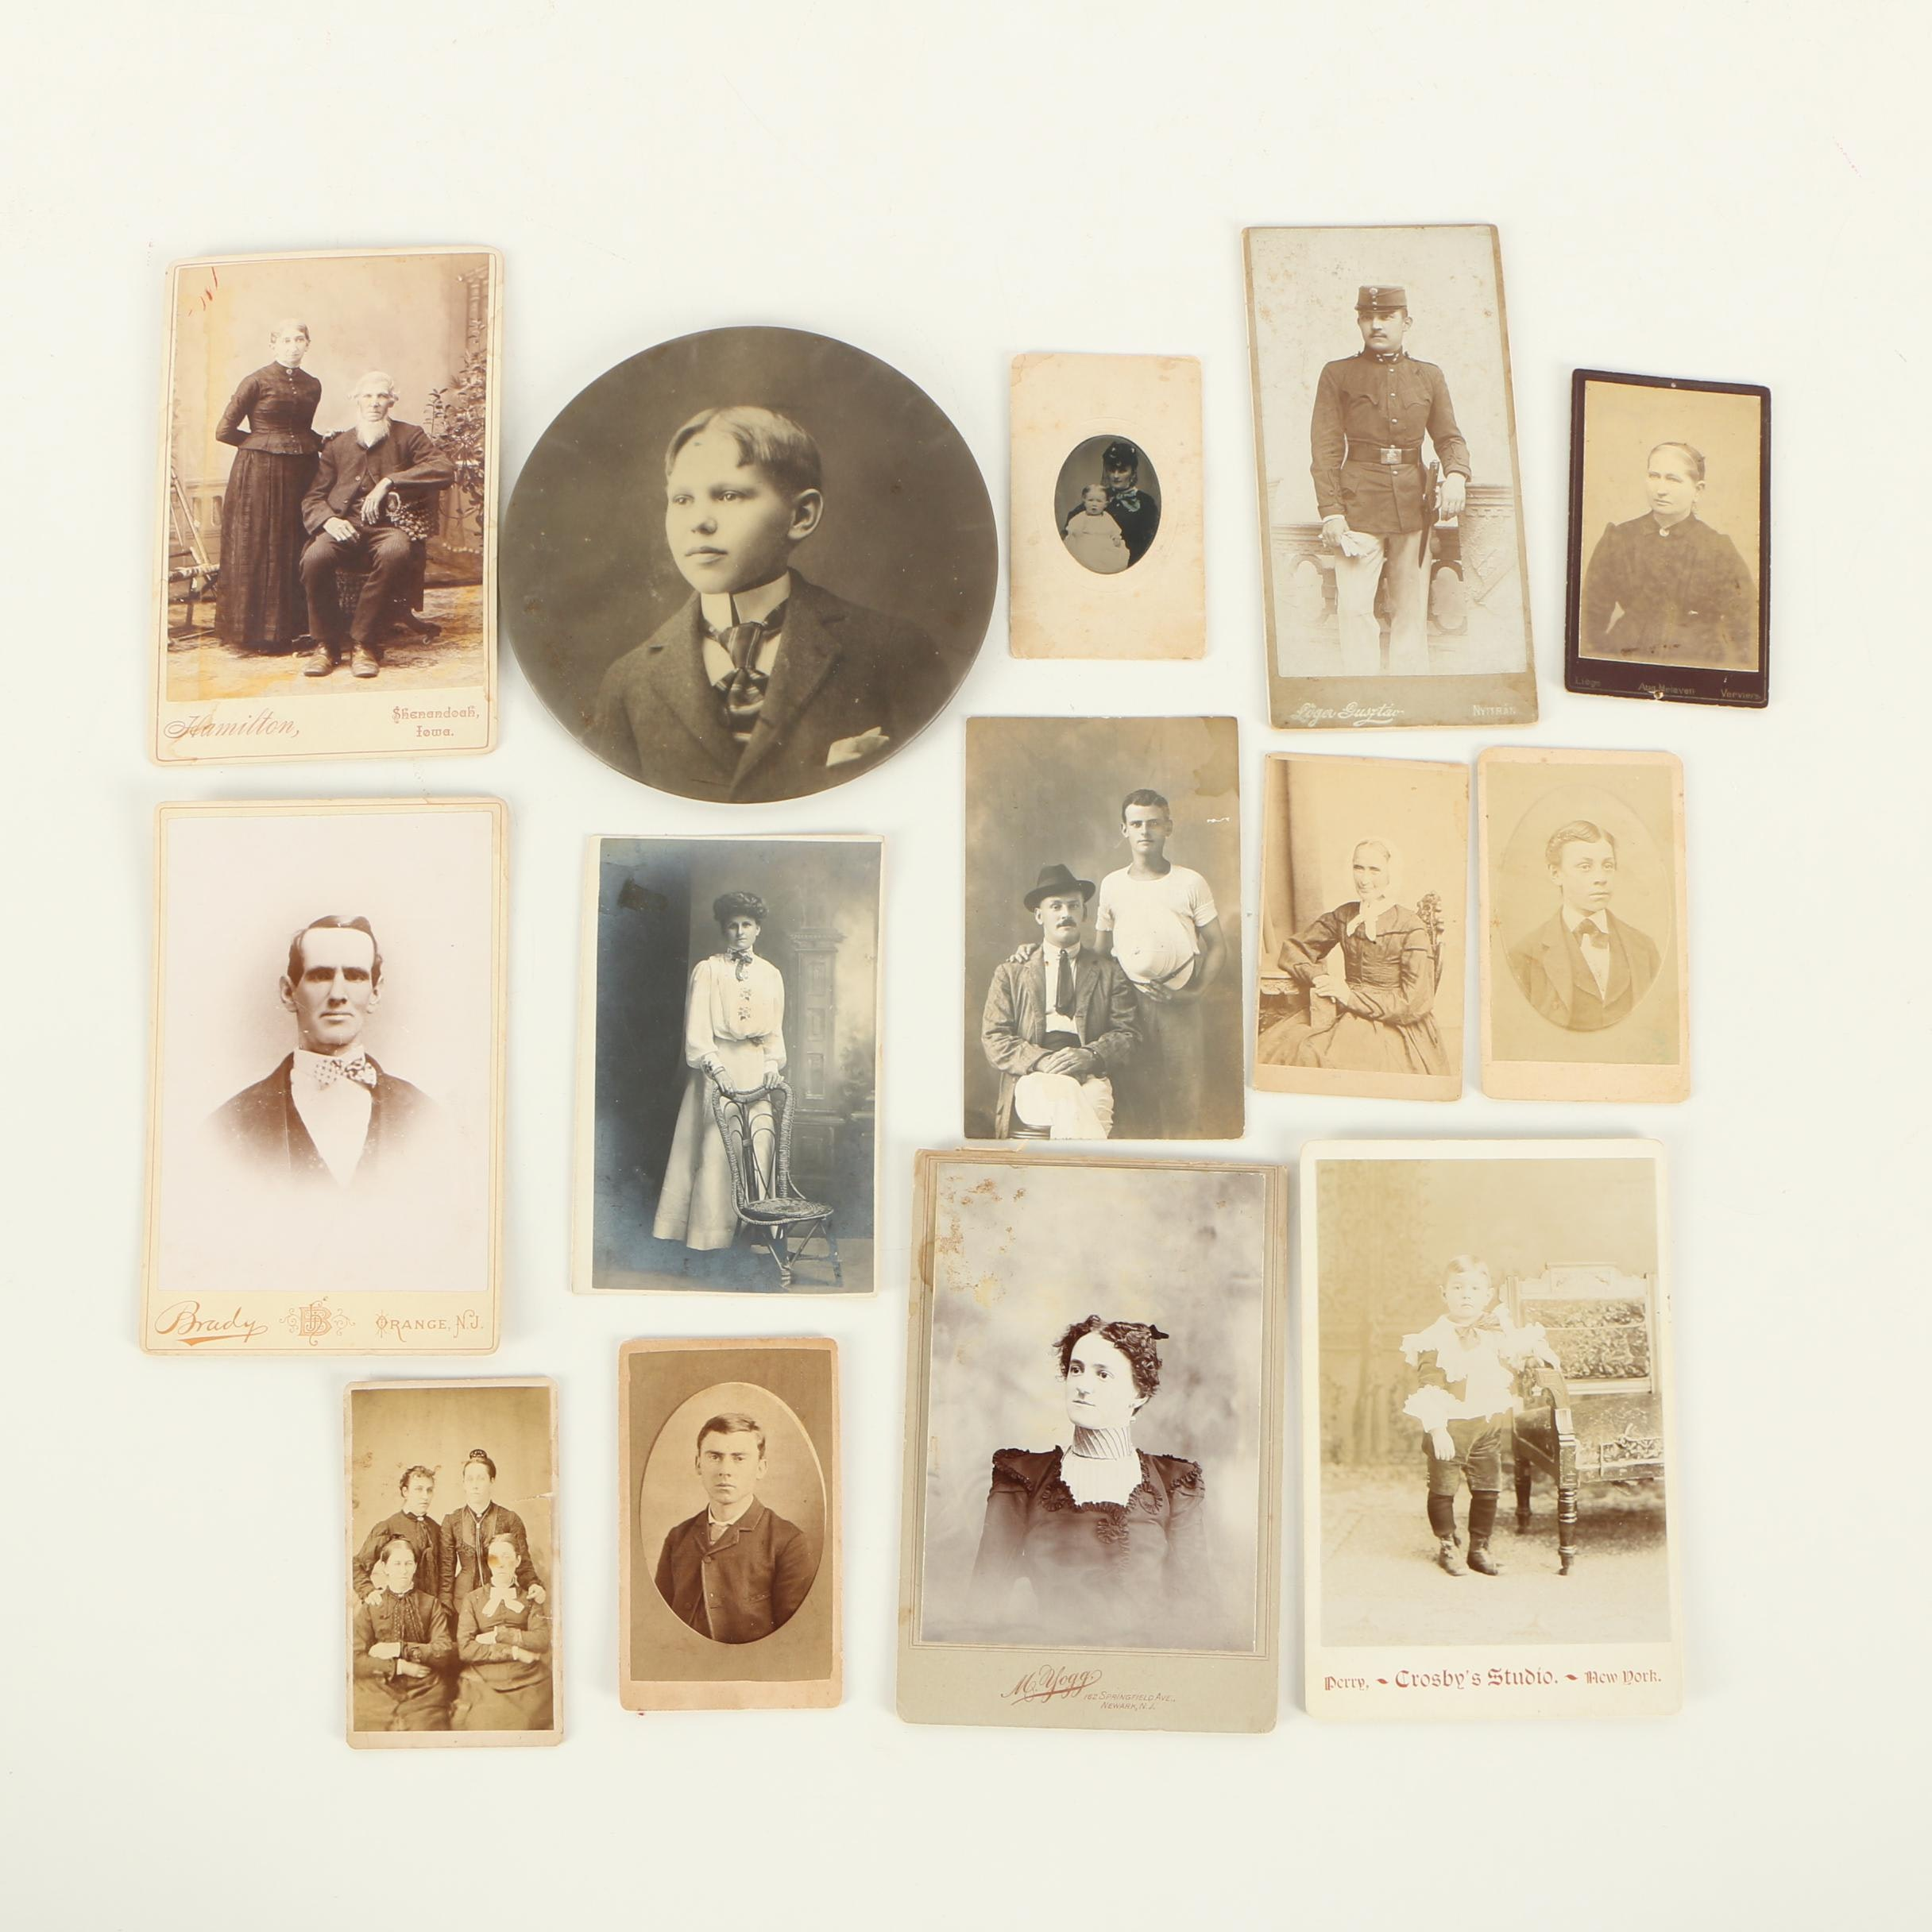 Assorted 19th Century Photographs